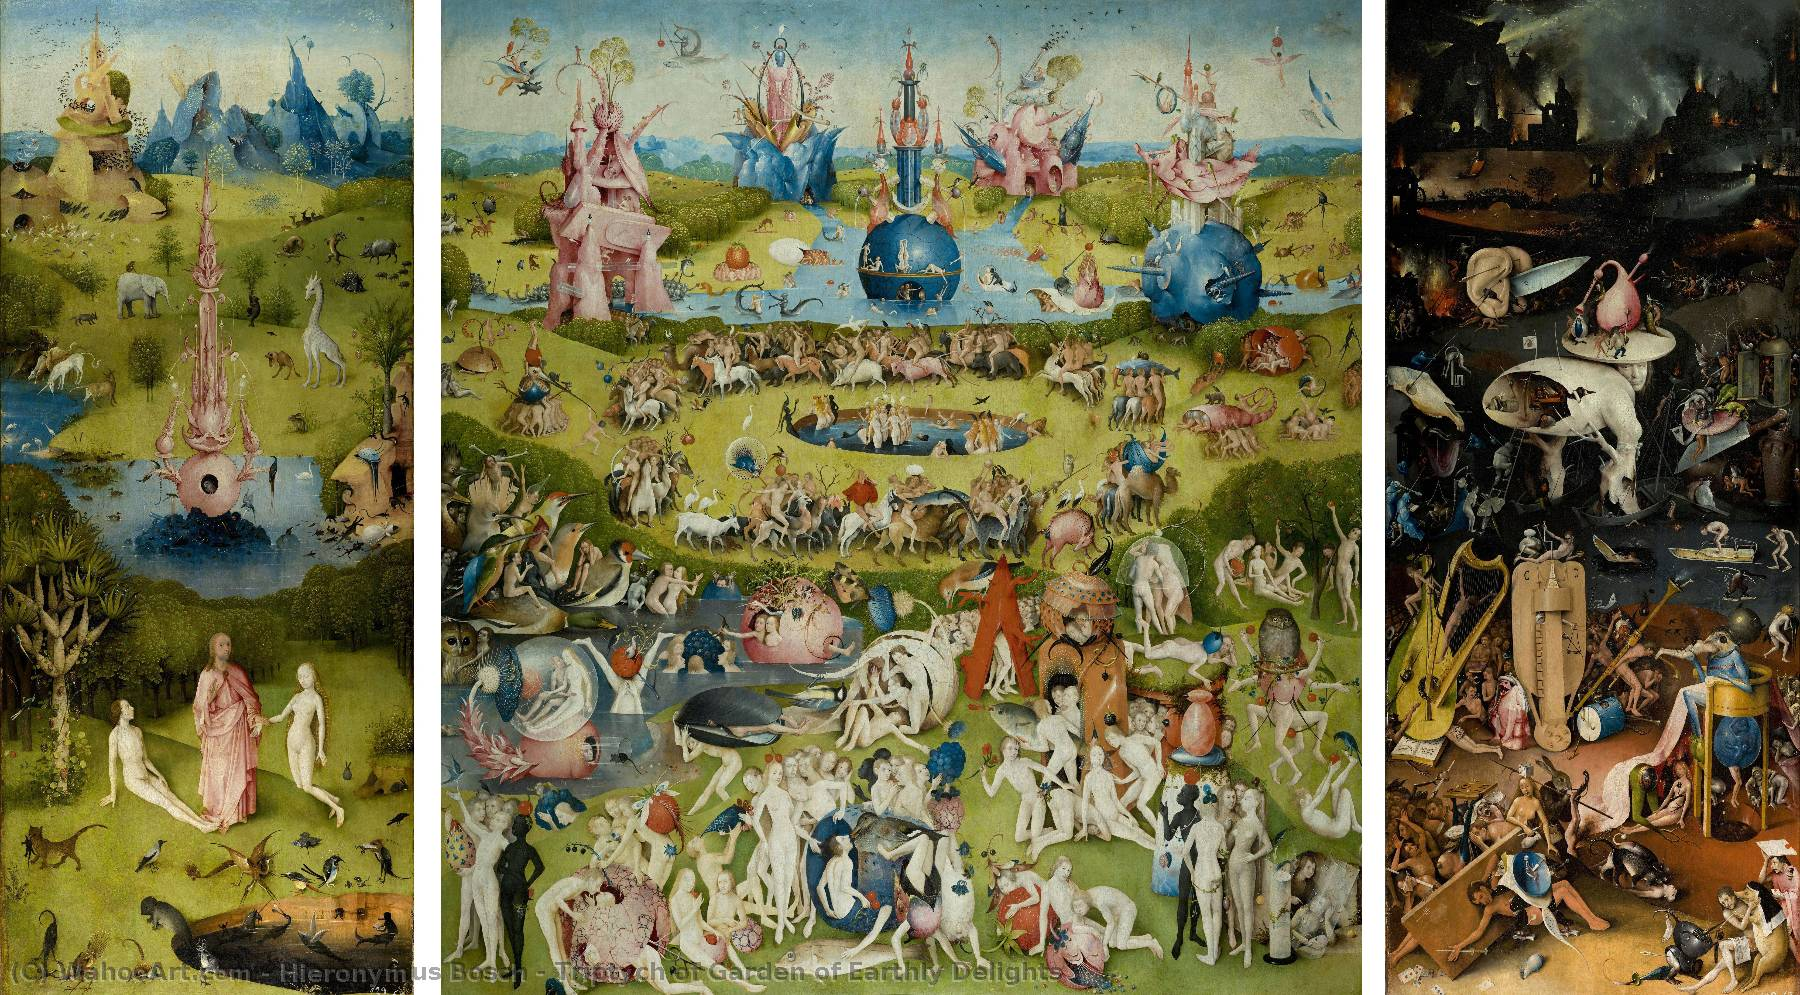 Order Paintings Reproductions | Triptych of Garden of Earthly Delights by Hieronymus Bosch | Most-Famous-Paintings.com